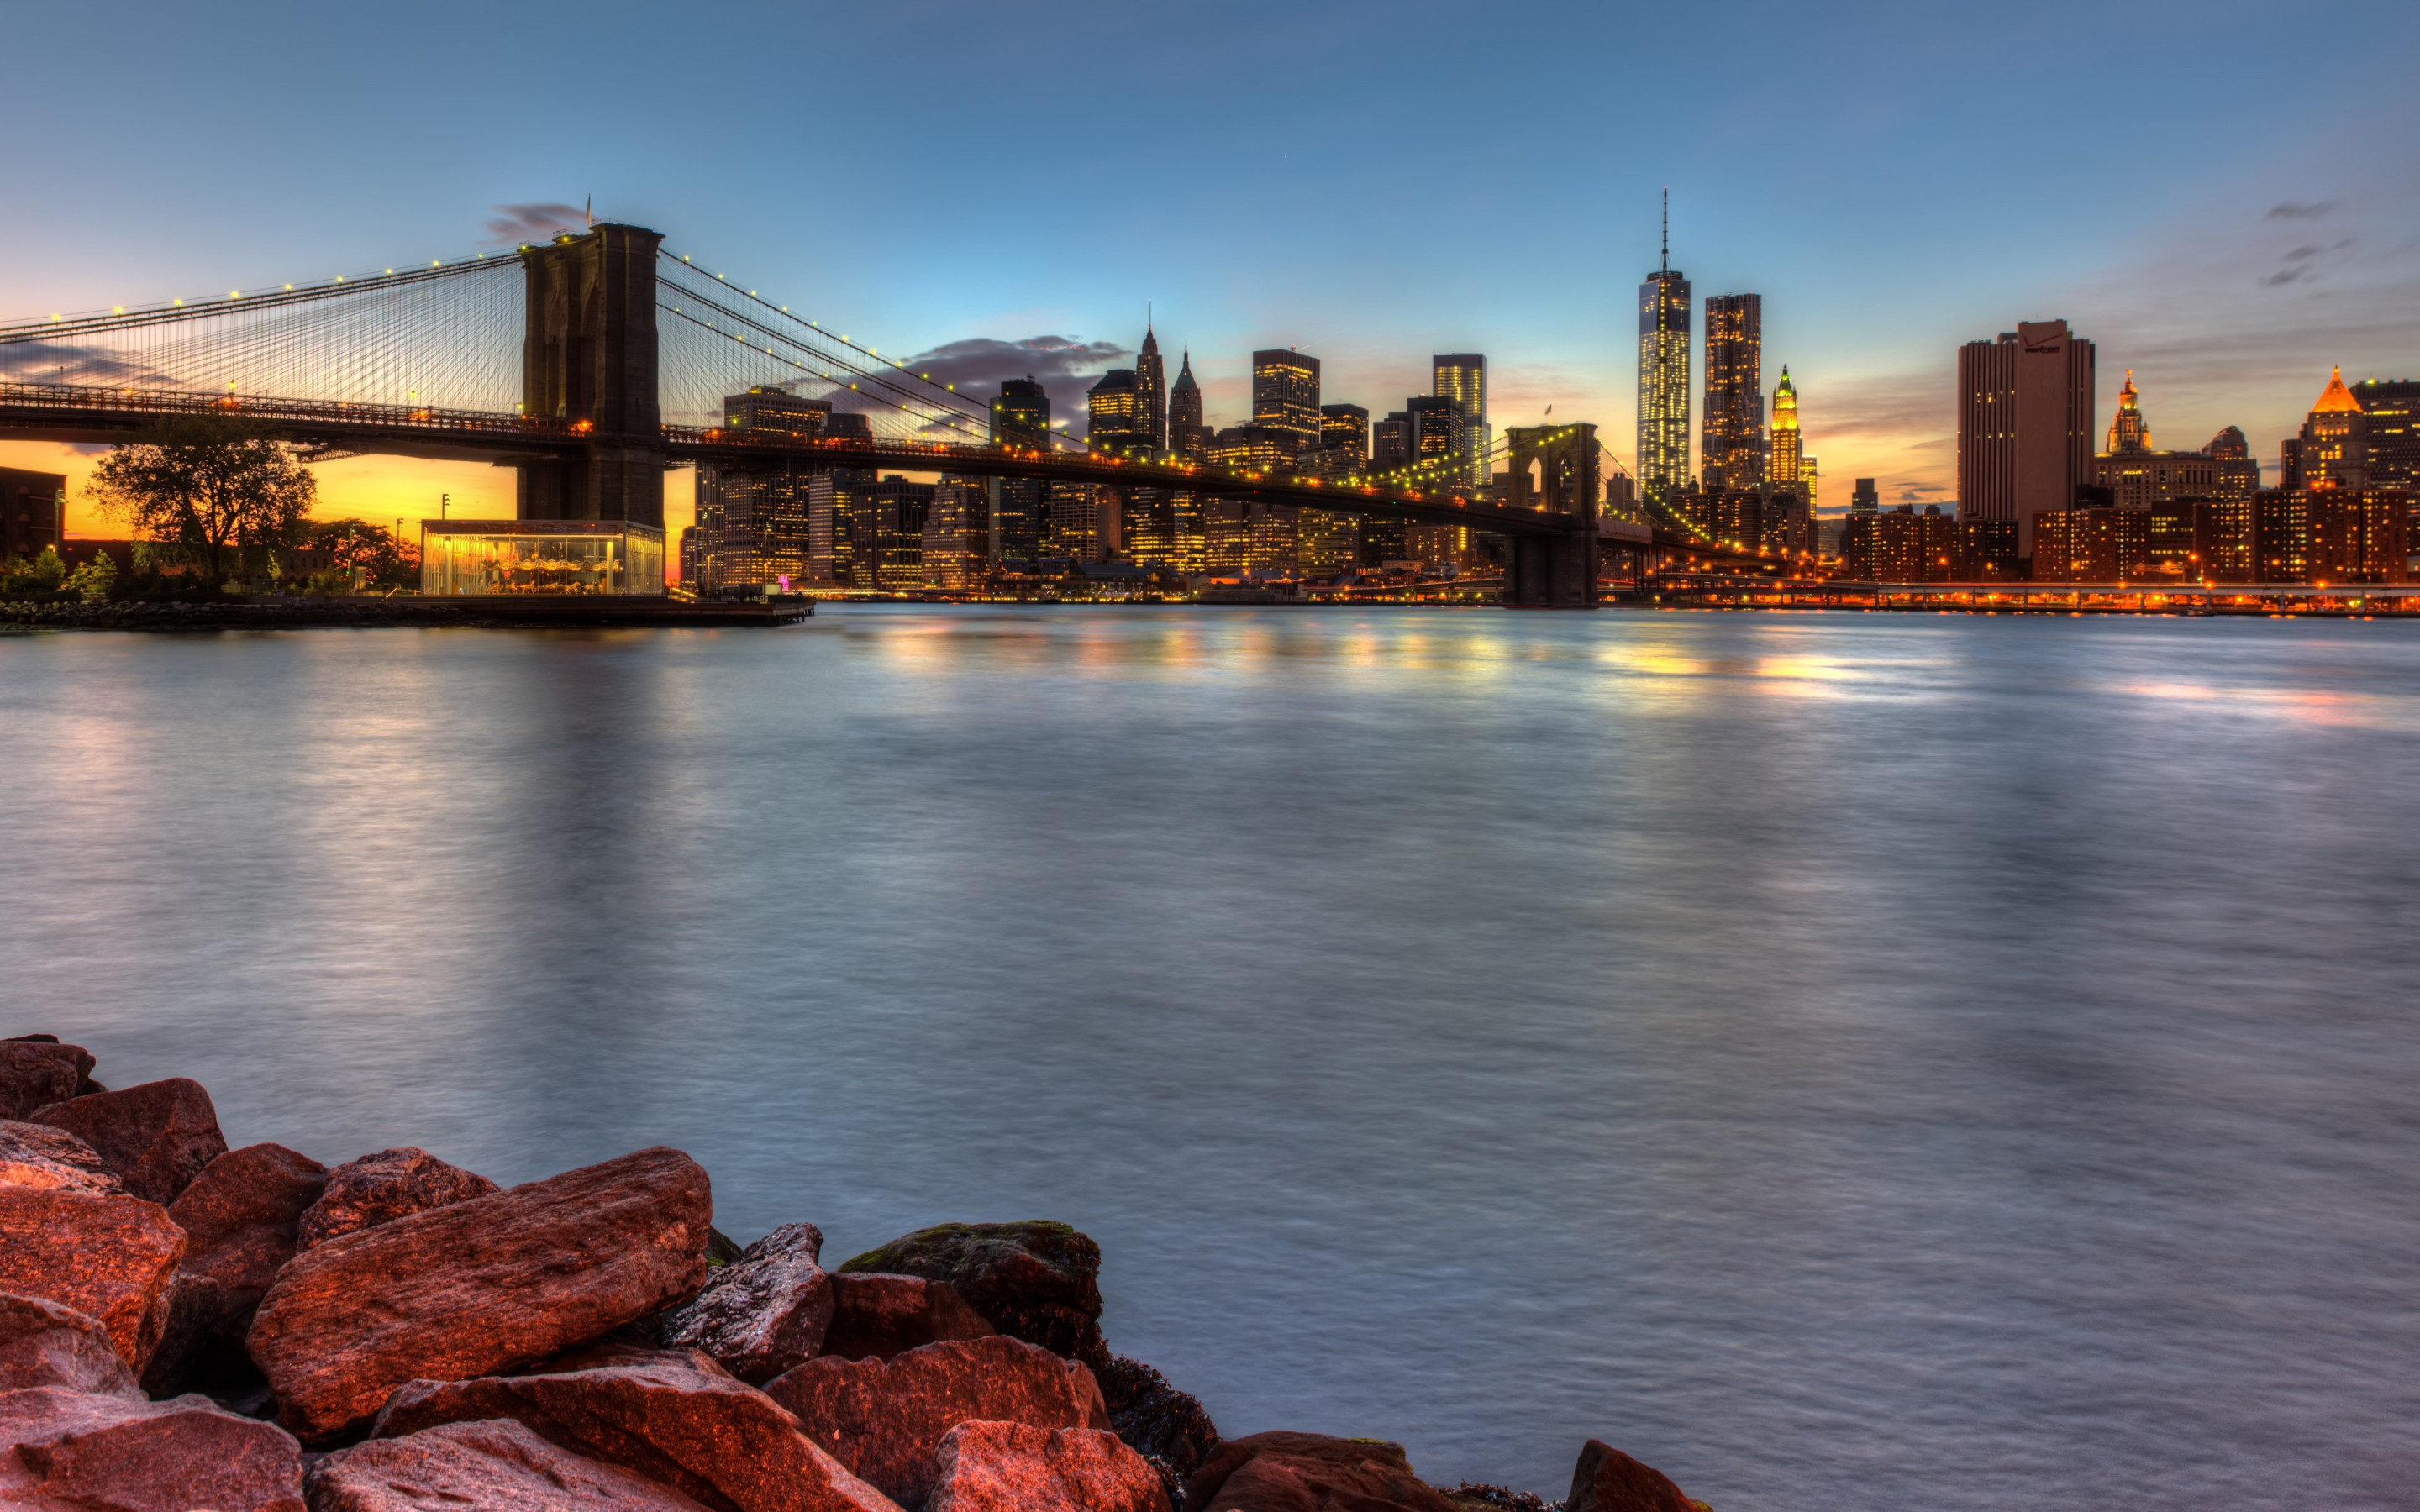 Brooklyn Bridge, NY, USA wallpaper 2880x1800